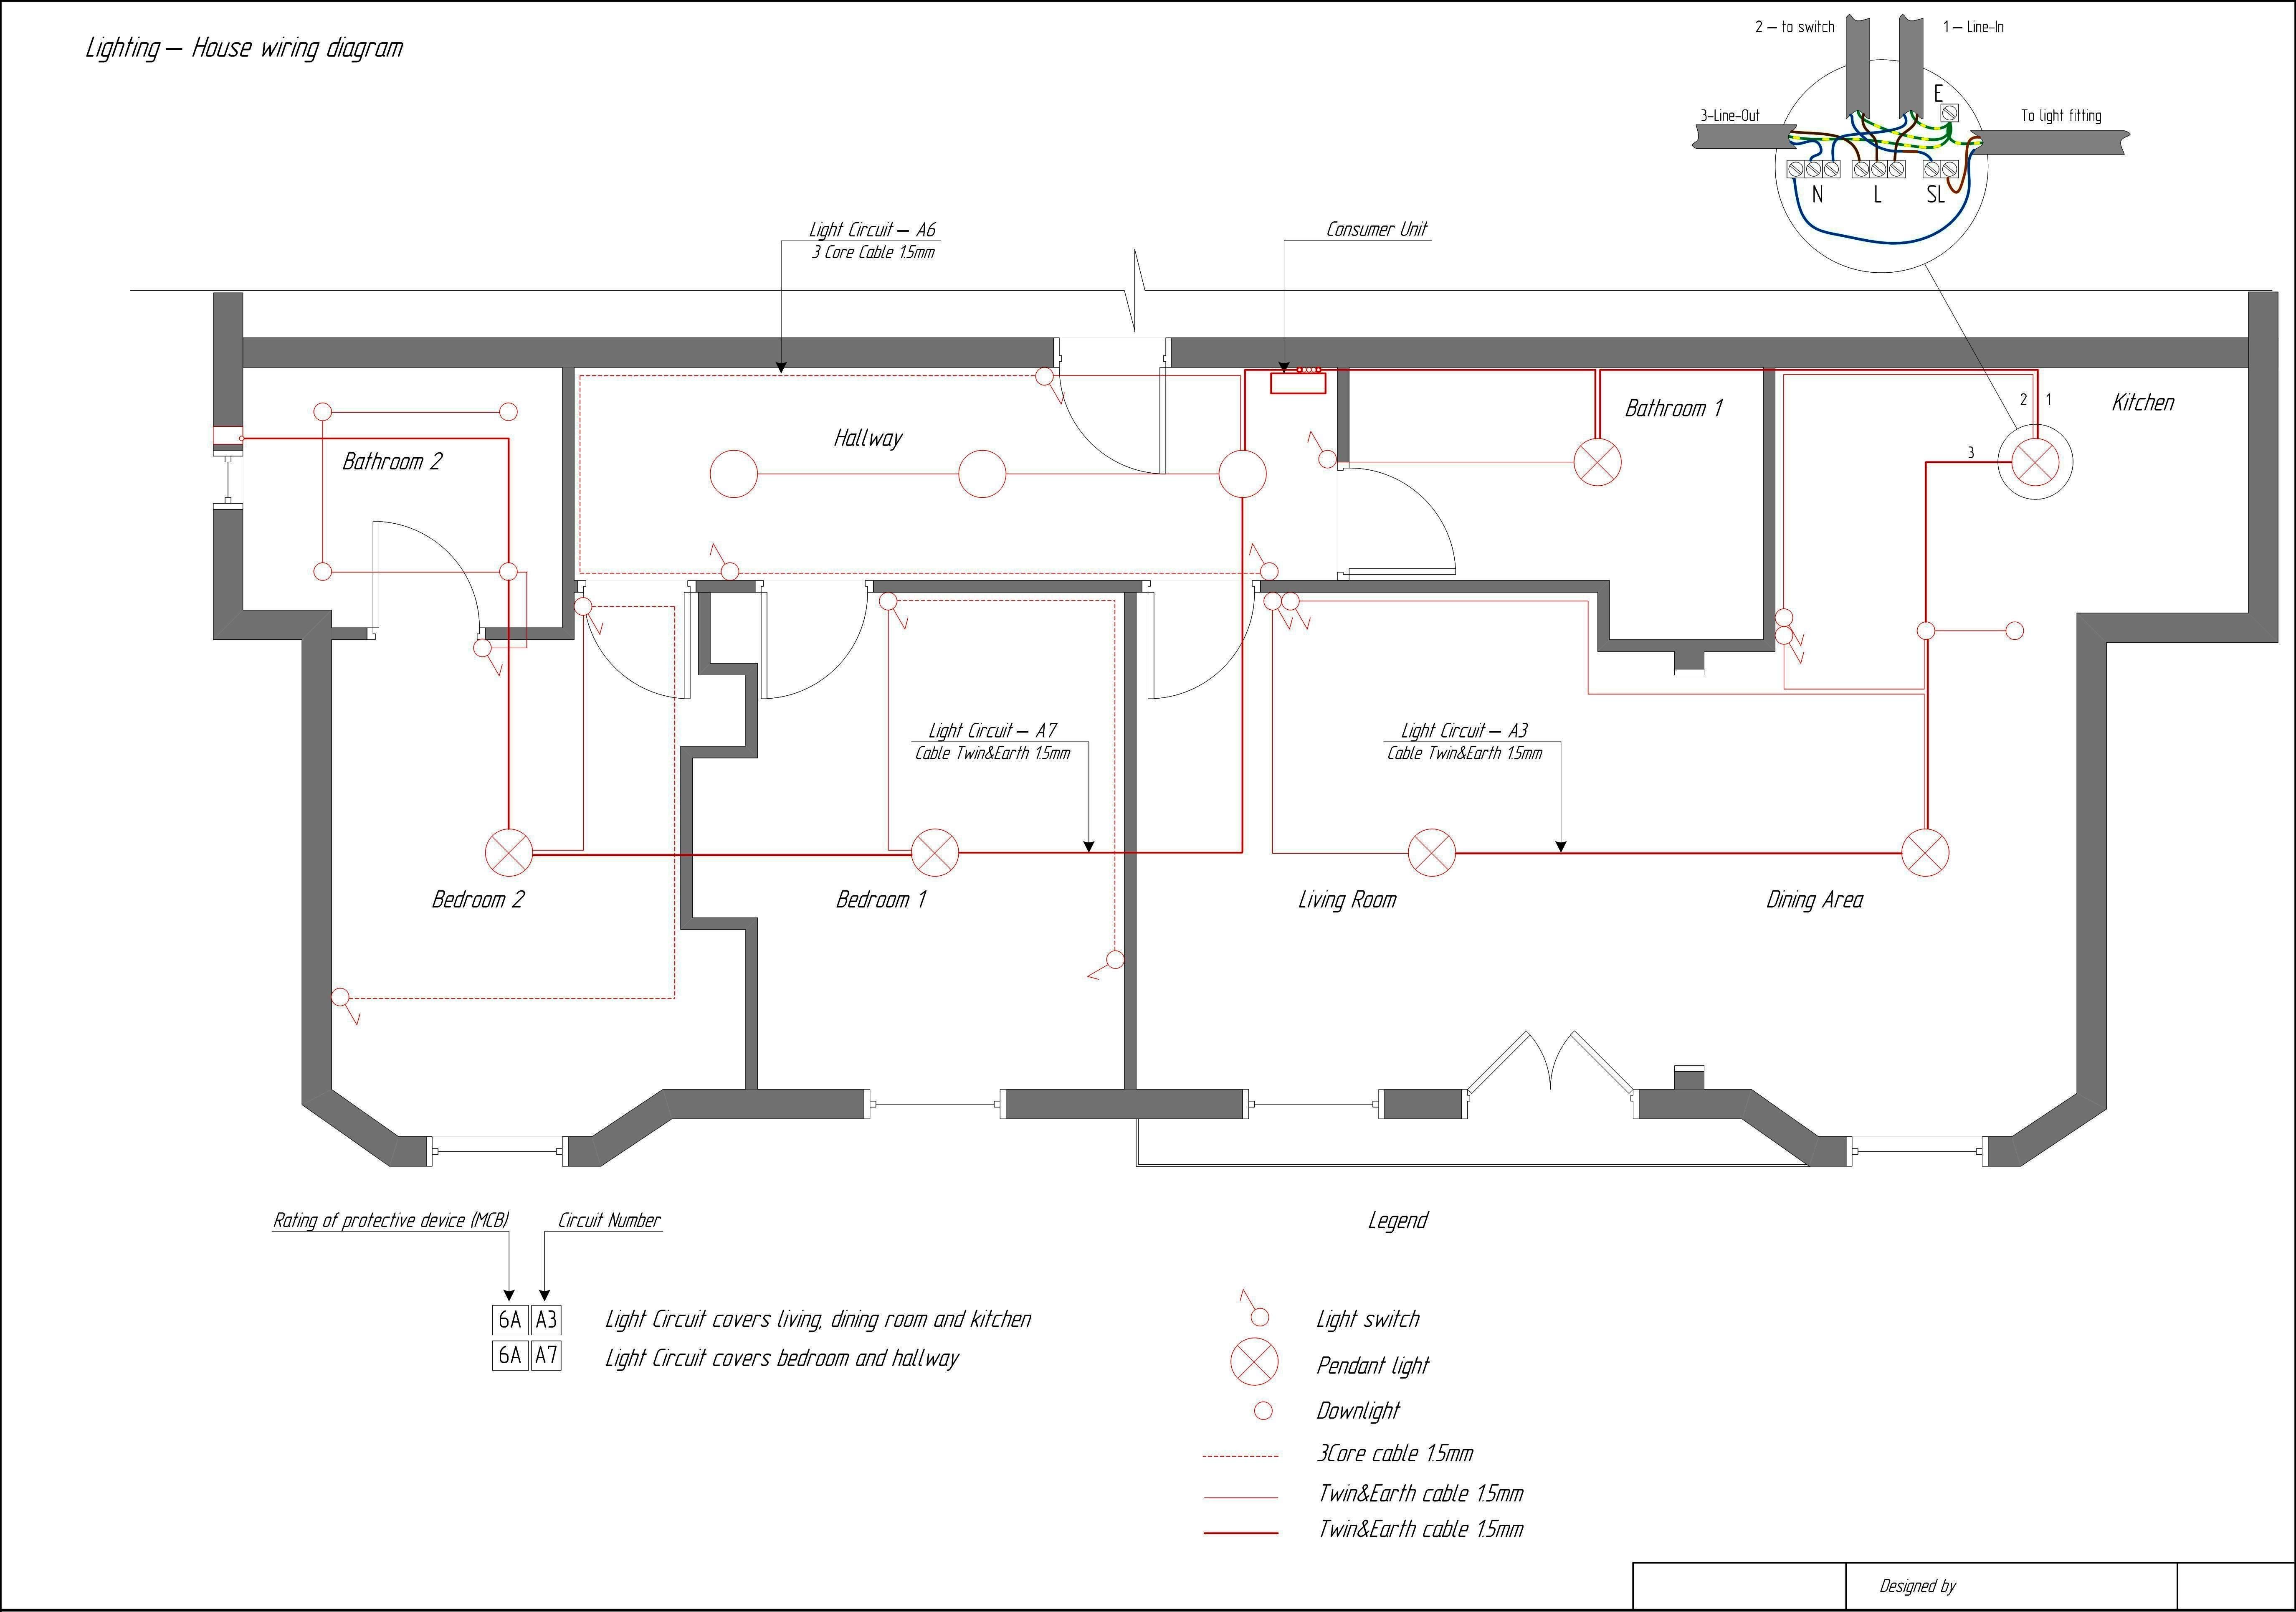 Home Electrical Wiring Diagrams House Wiring Diagram House Wiring Diagrams Database Of Home Electrical Wiring Diagrams Electrical Diagram for House originalstylophone